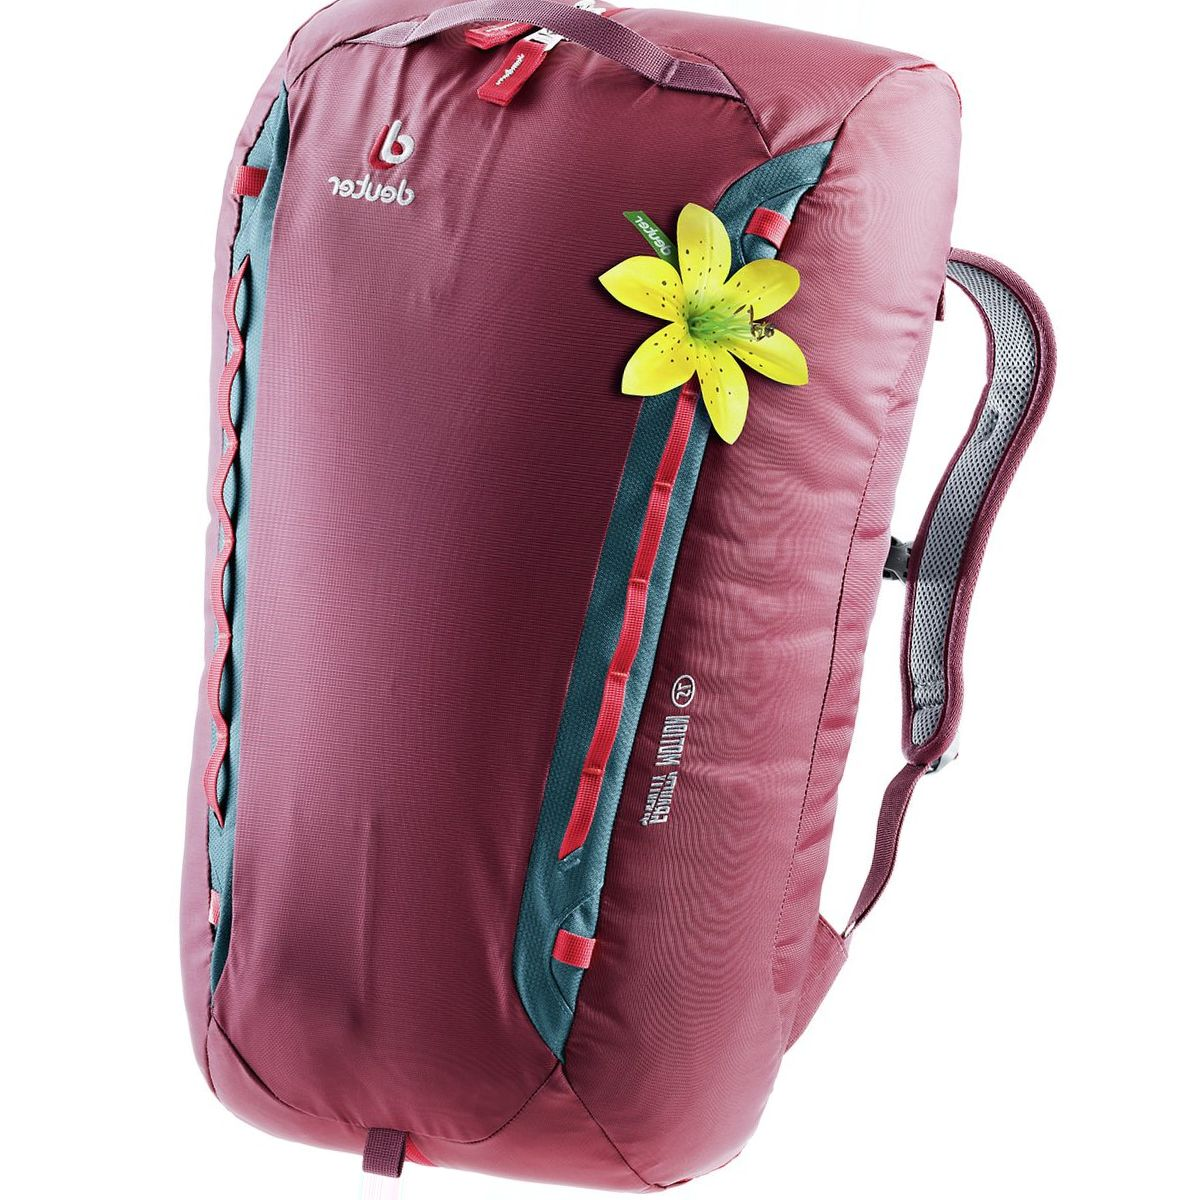 Deuter Gravity Motion SL 35L Backpack - Women's